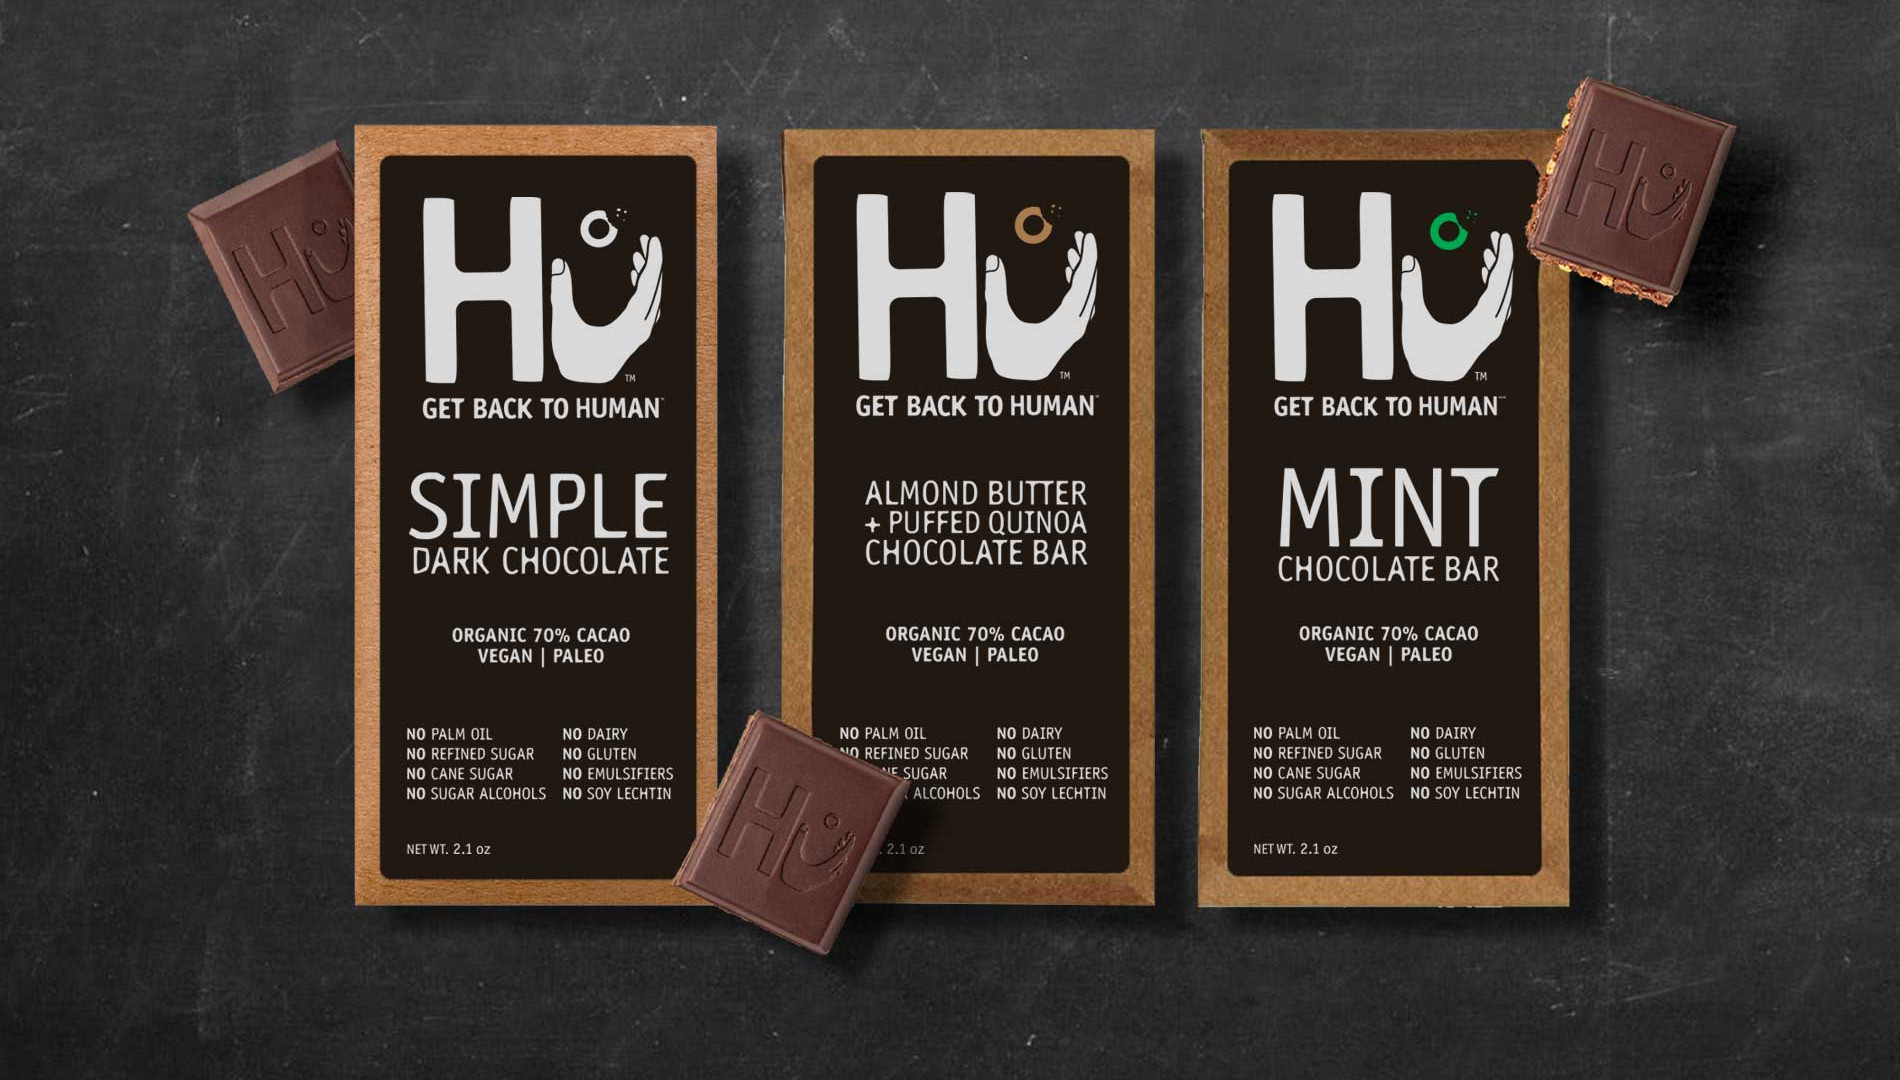 hu-chocolate-almand-butter-simple-mint.j